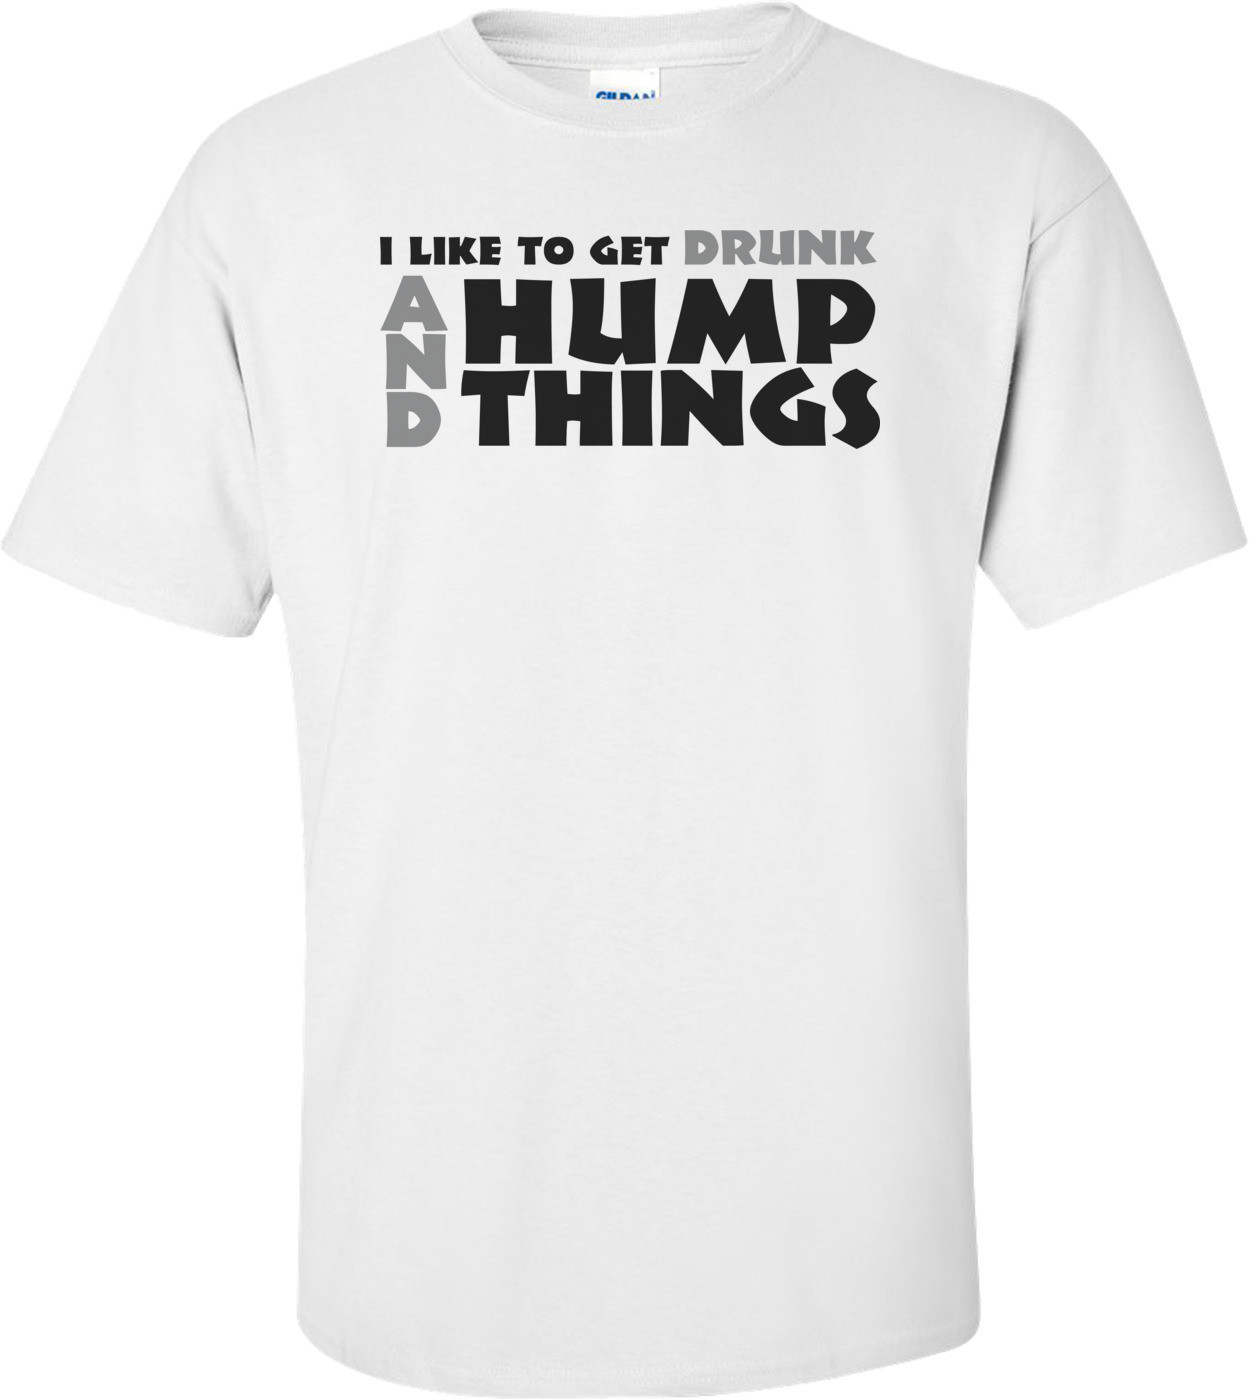 I Like To Get Drunk And Hump Things T-shirt